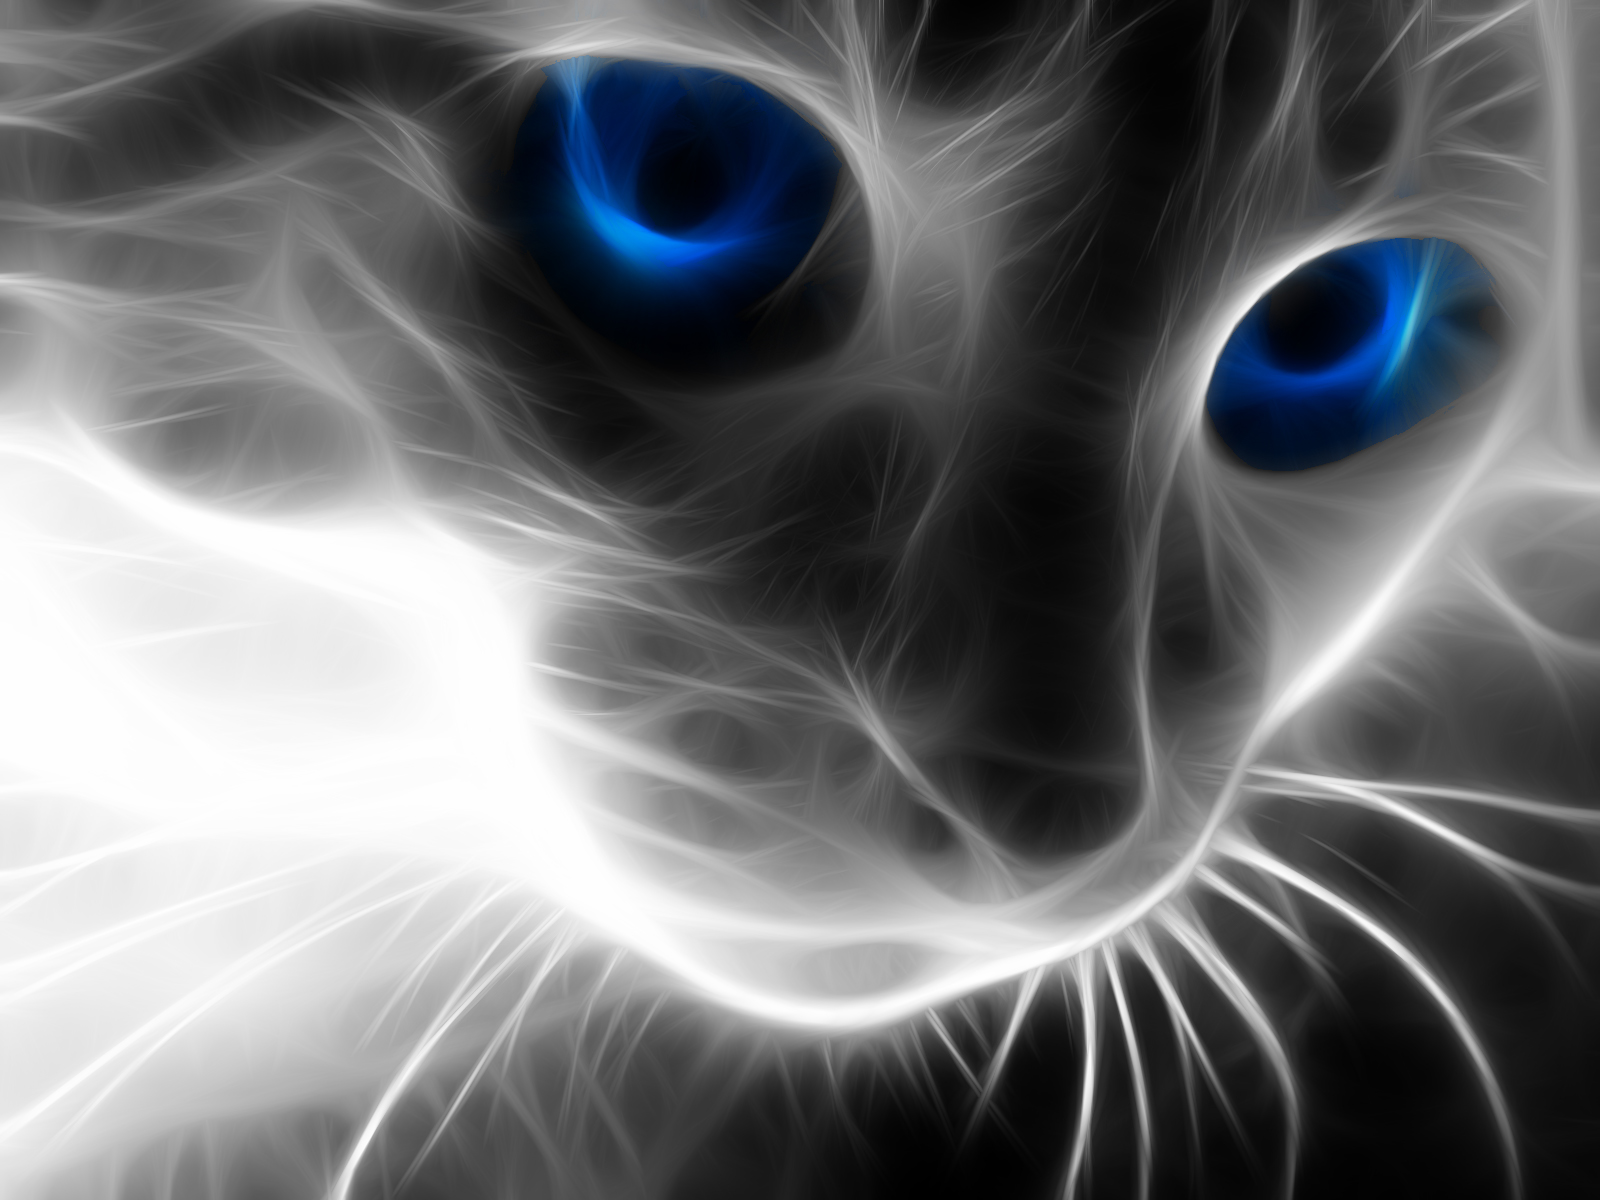 amazing cat pictures Cat with blue eyes, Eyes wallpaper